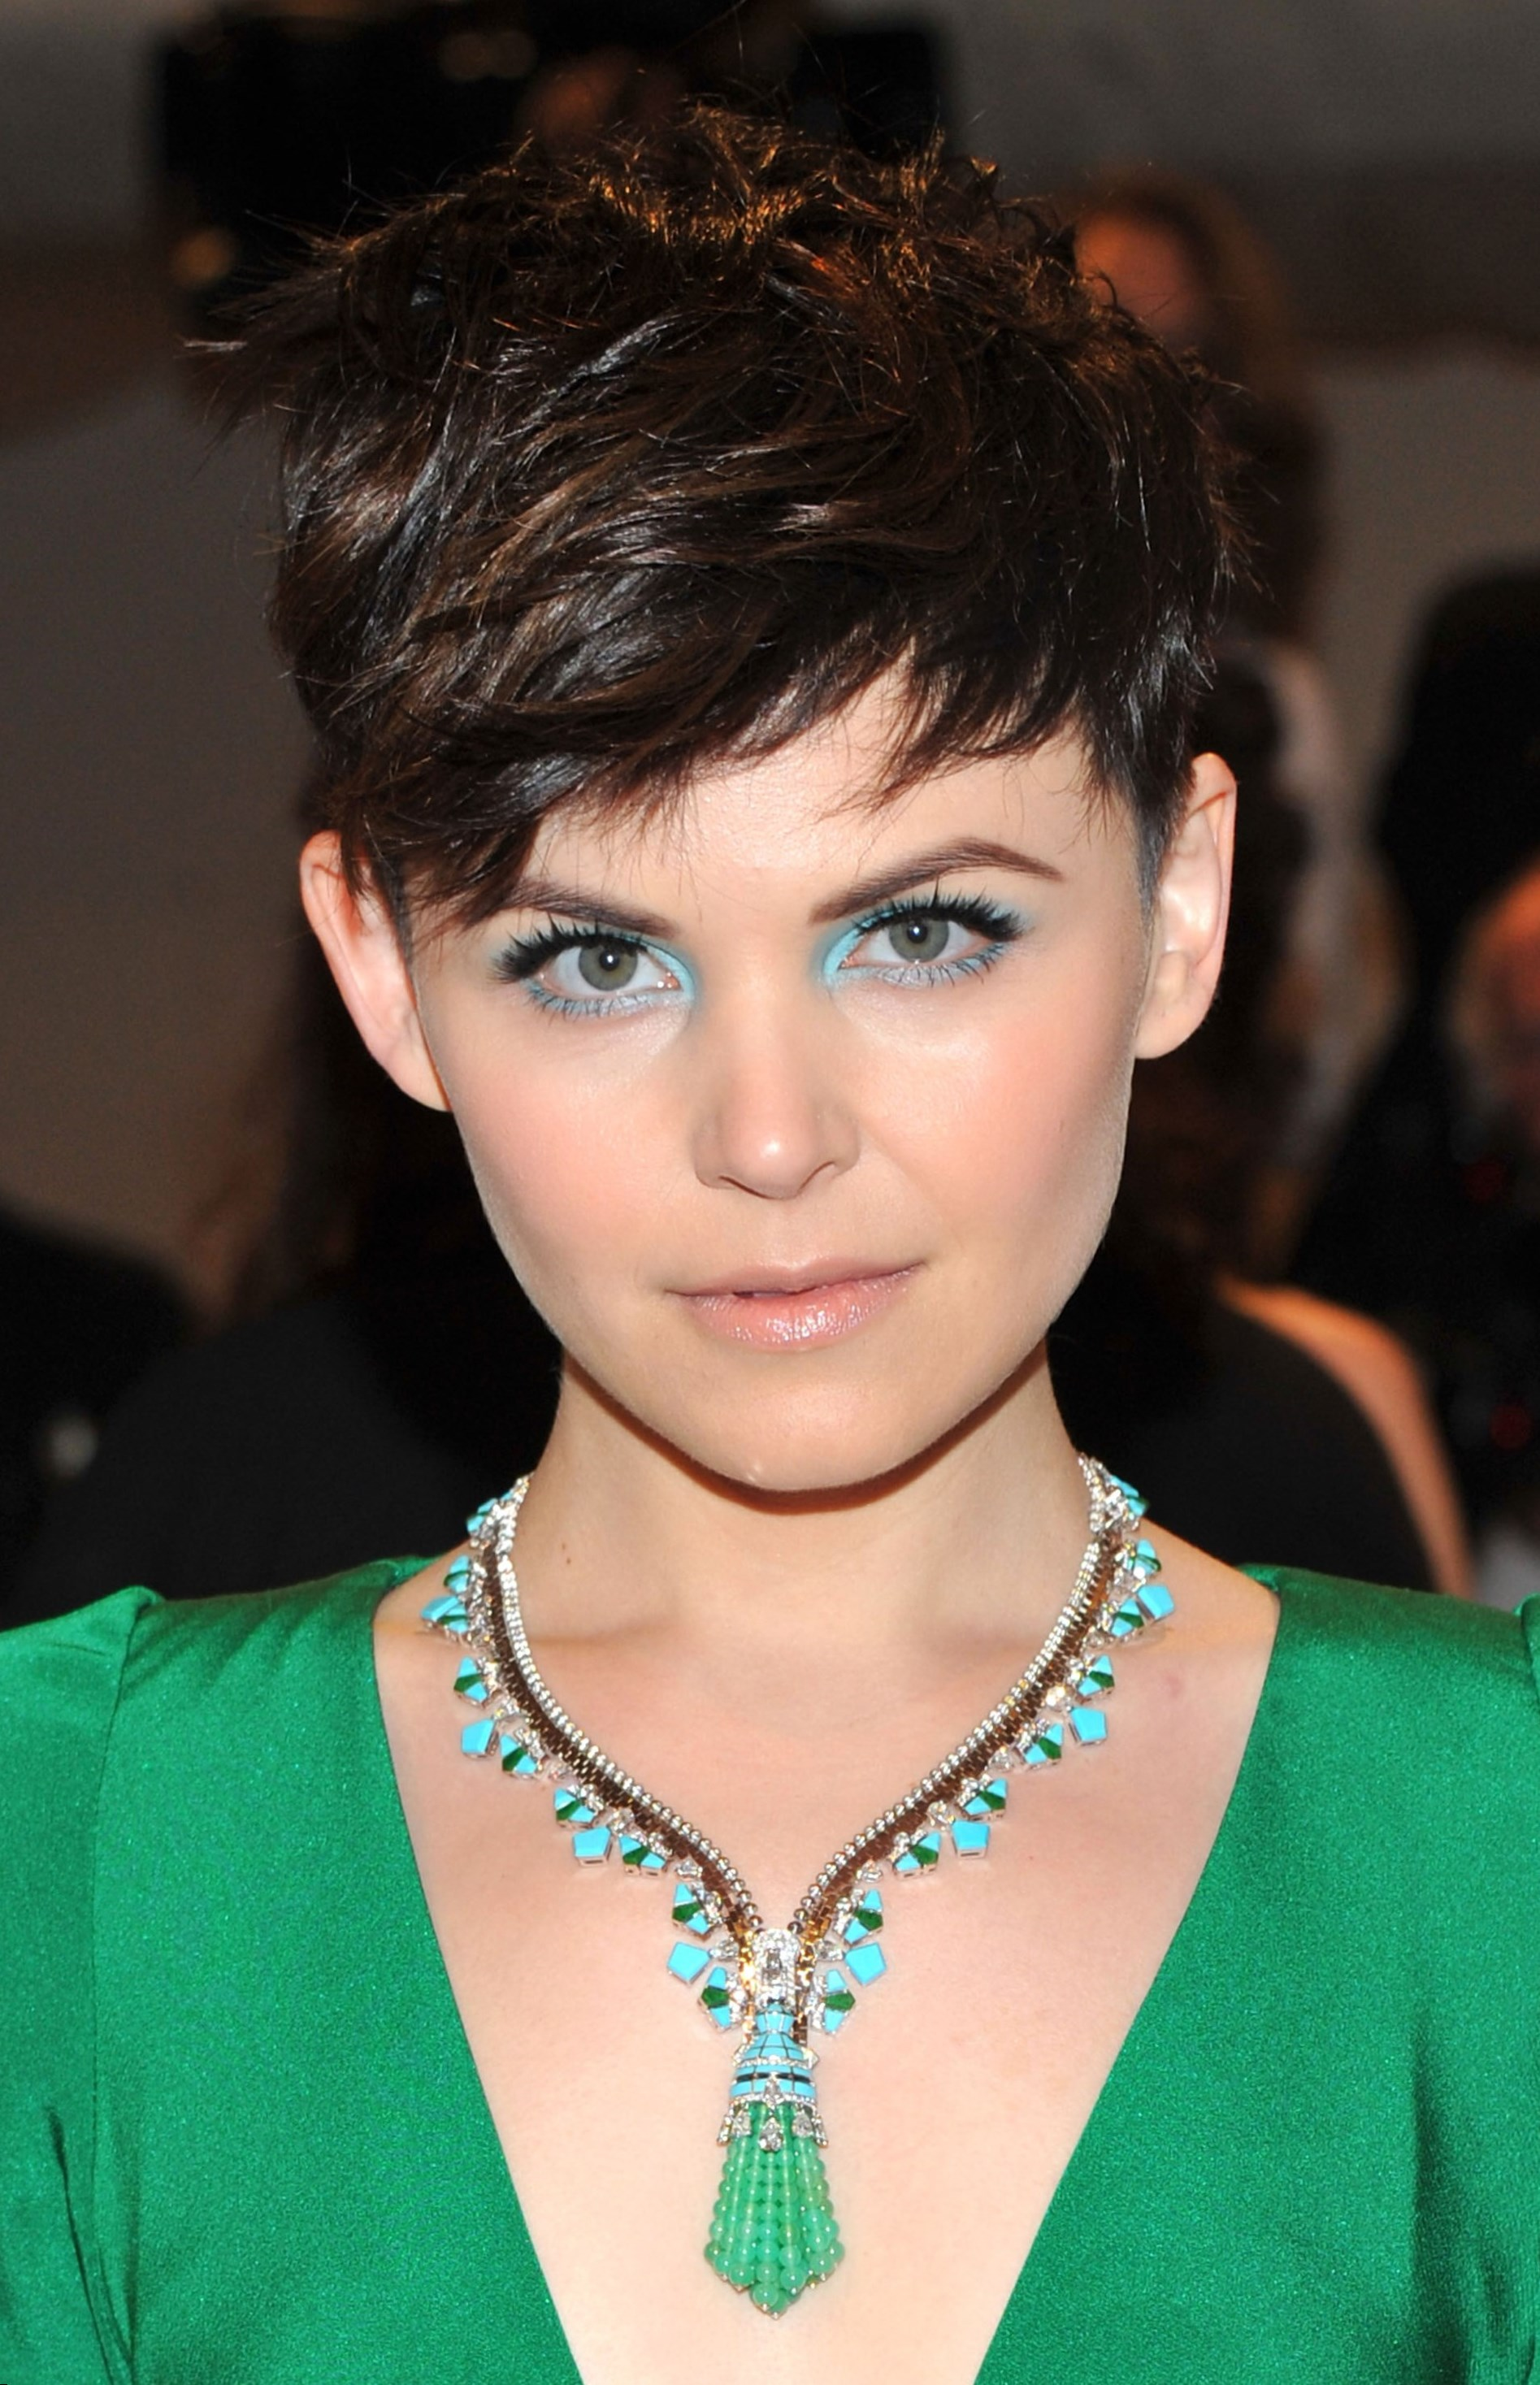 Ginnifer Goodwin weight, height and age. We know it all!